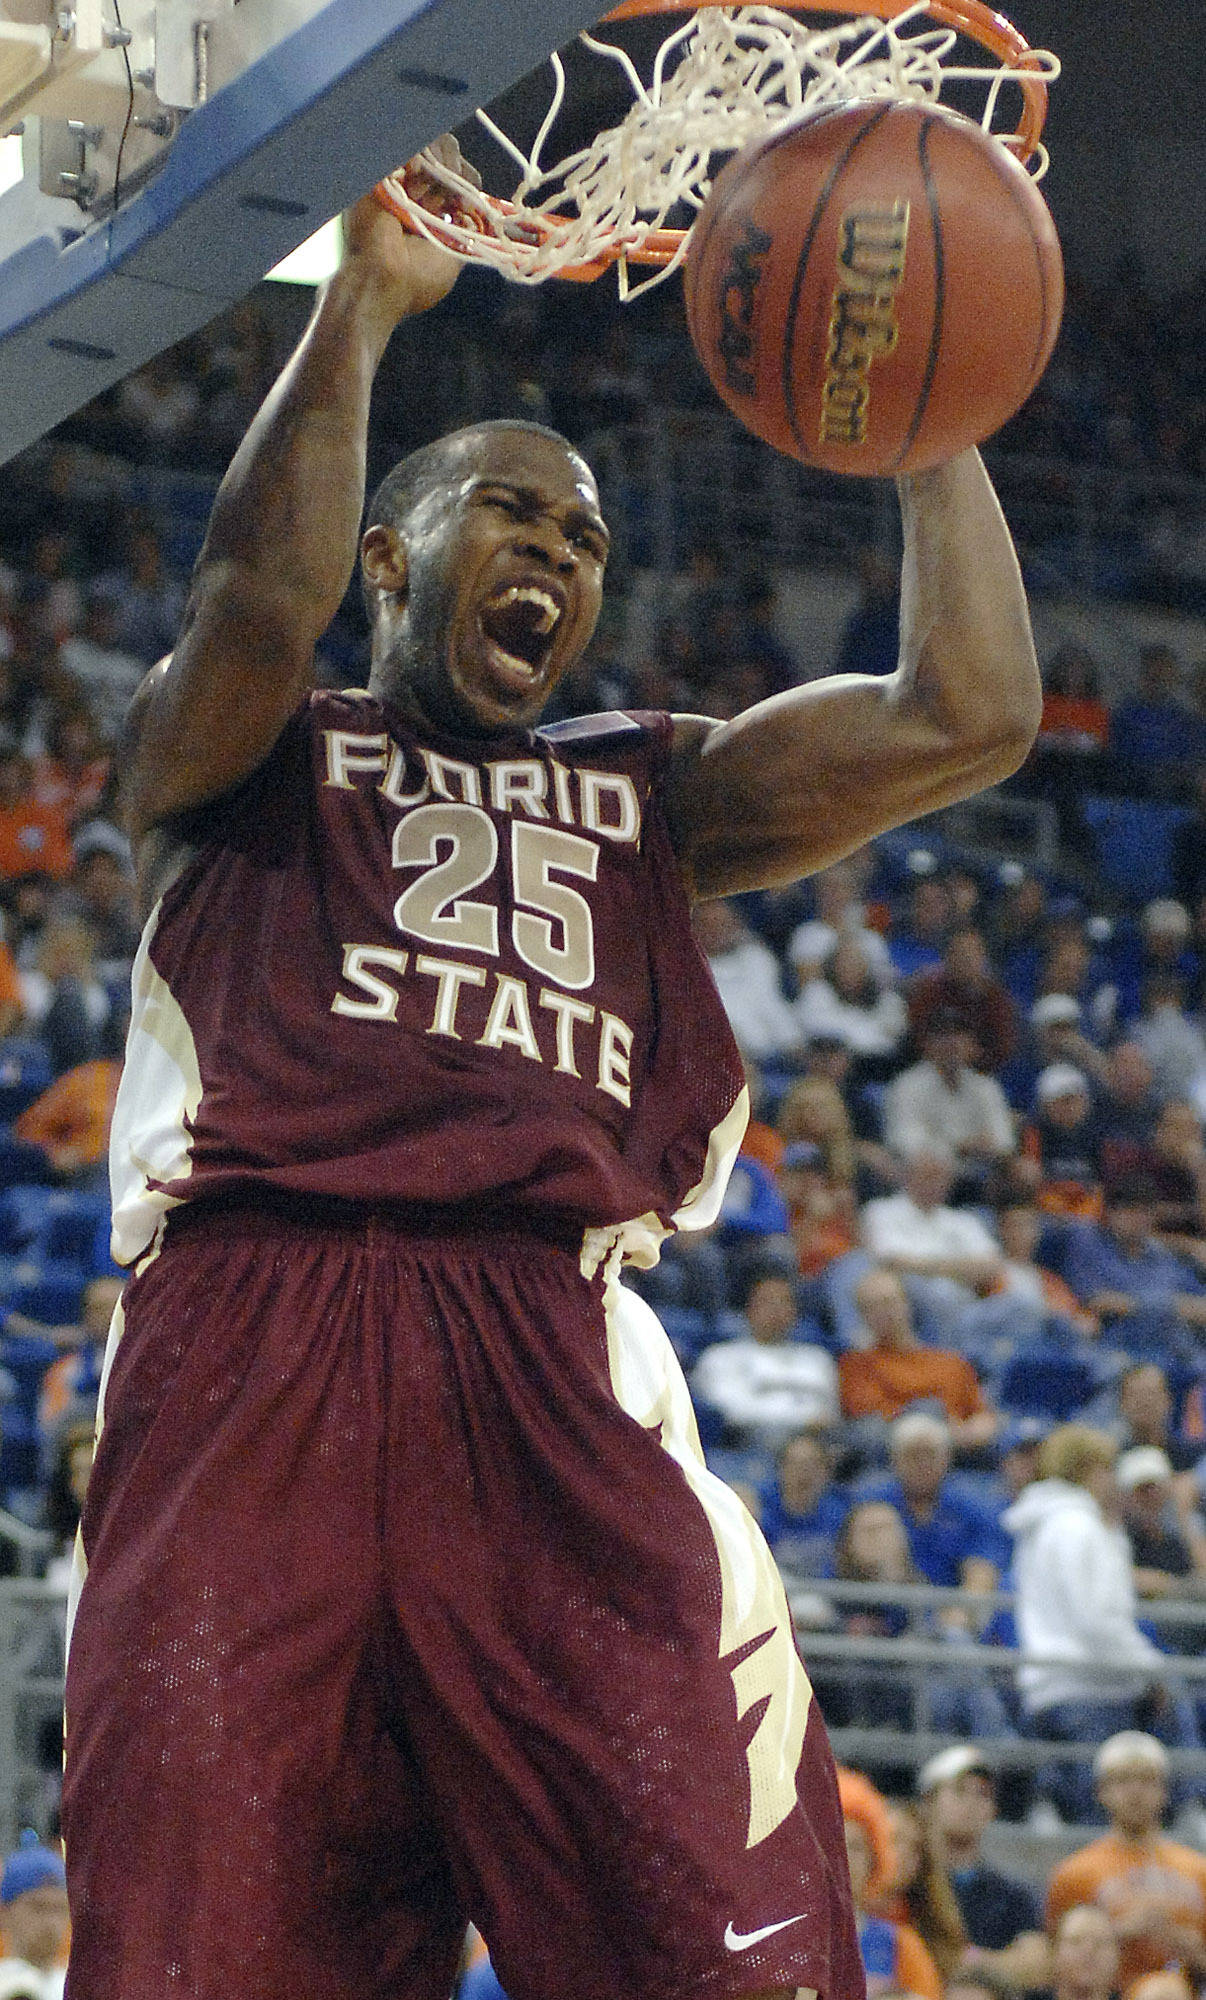 Florida State's Jason Rich celebrates as he scores during Florida State's 65-51 win.